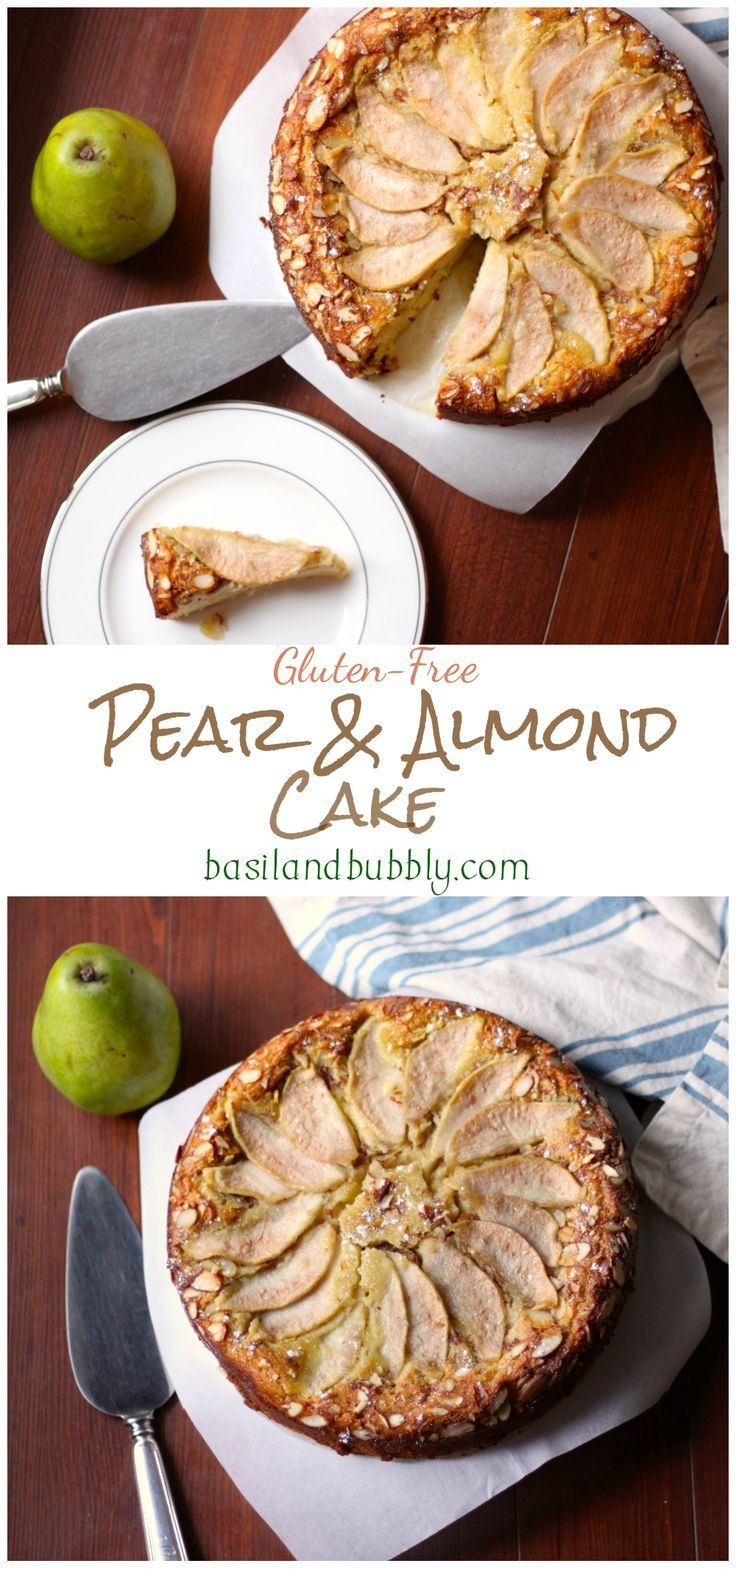 Rich and buttery Pear and Almond Cake is actually oil and butter free, gluten free, and dairy free.